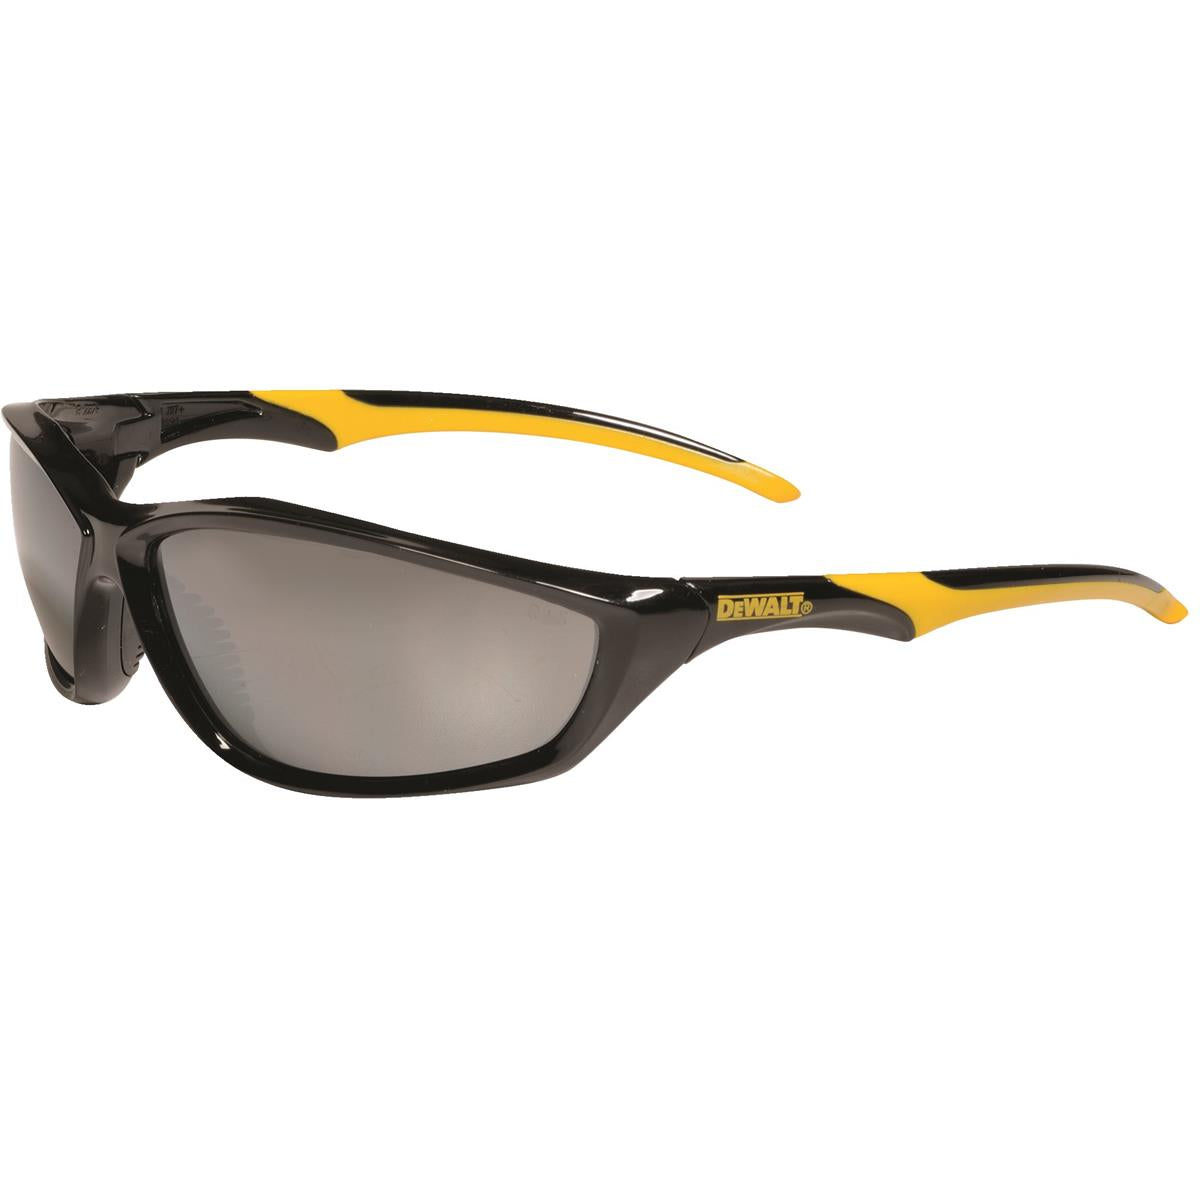 Dewalt Crooscut Scratch Resistant Clear Lens Safety Glasses Specs